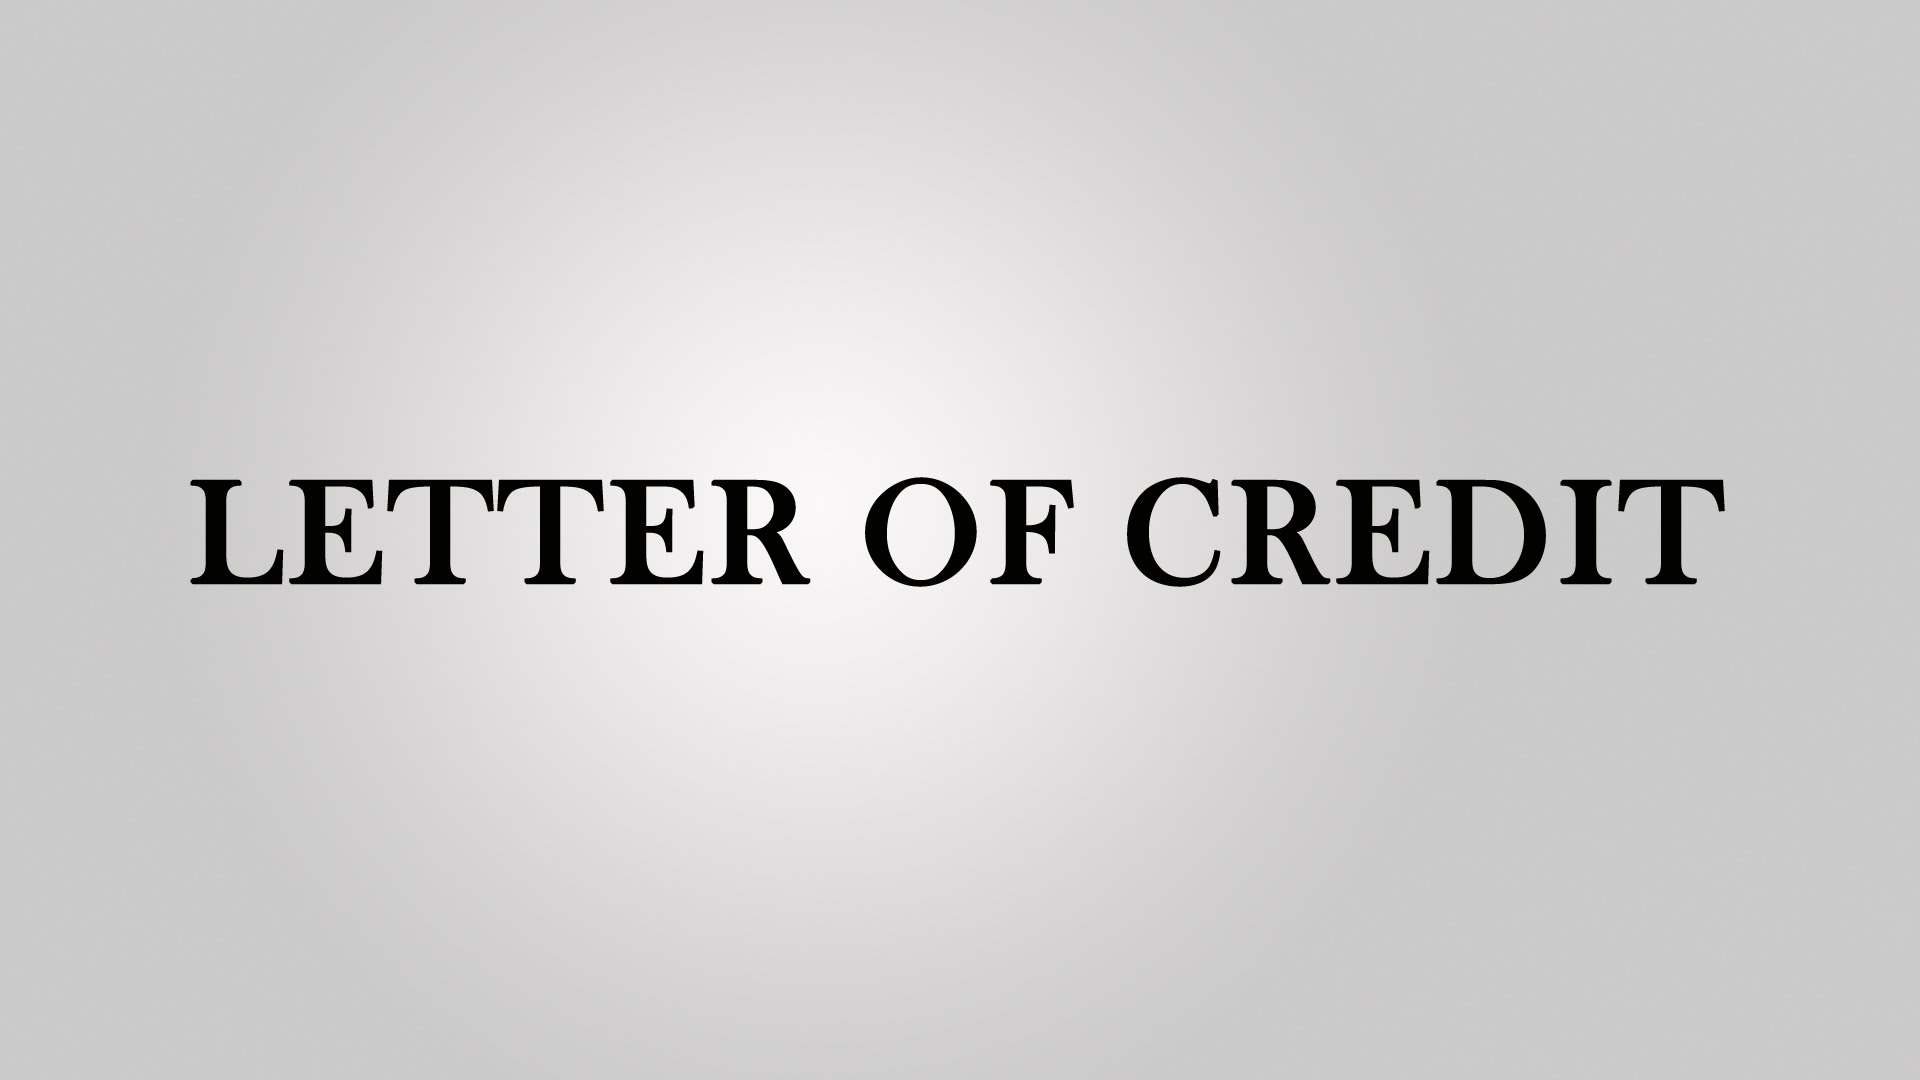 Irrevocable Standby Letter Of Credit Template - Free Templates 2019 Loan Against Letter Of Credit